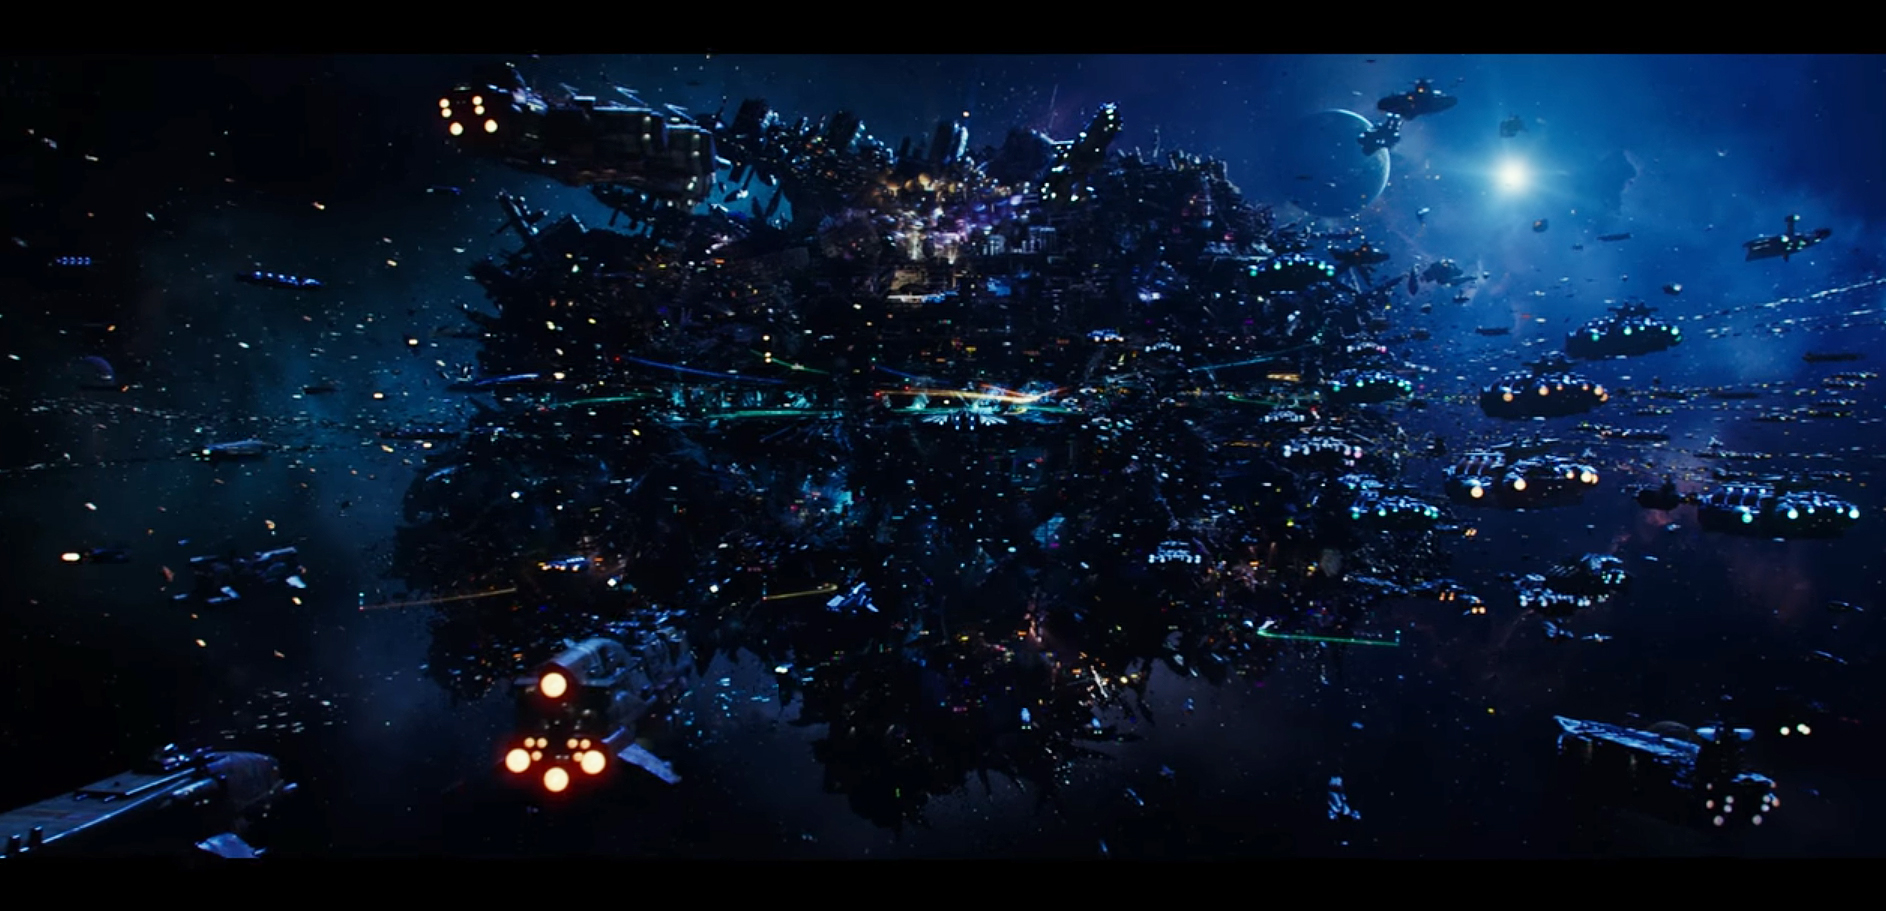 Valerian and the City of a Thousand Planets Wallpaper 16   1886 X 1886x911